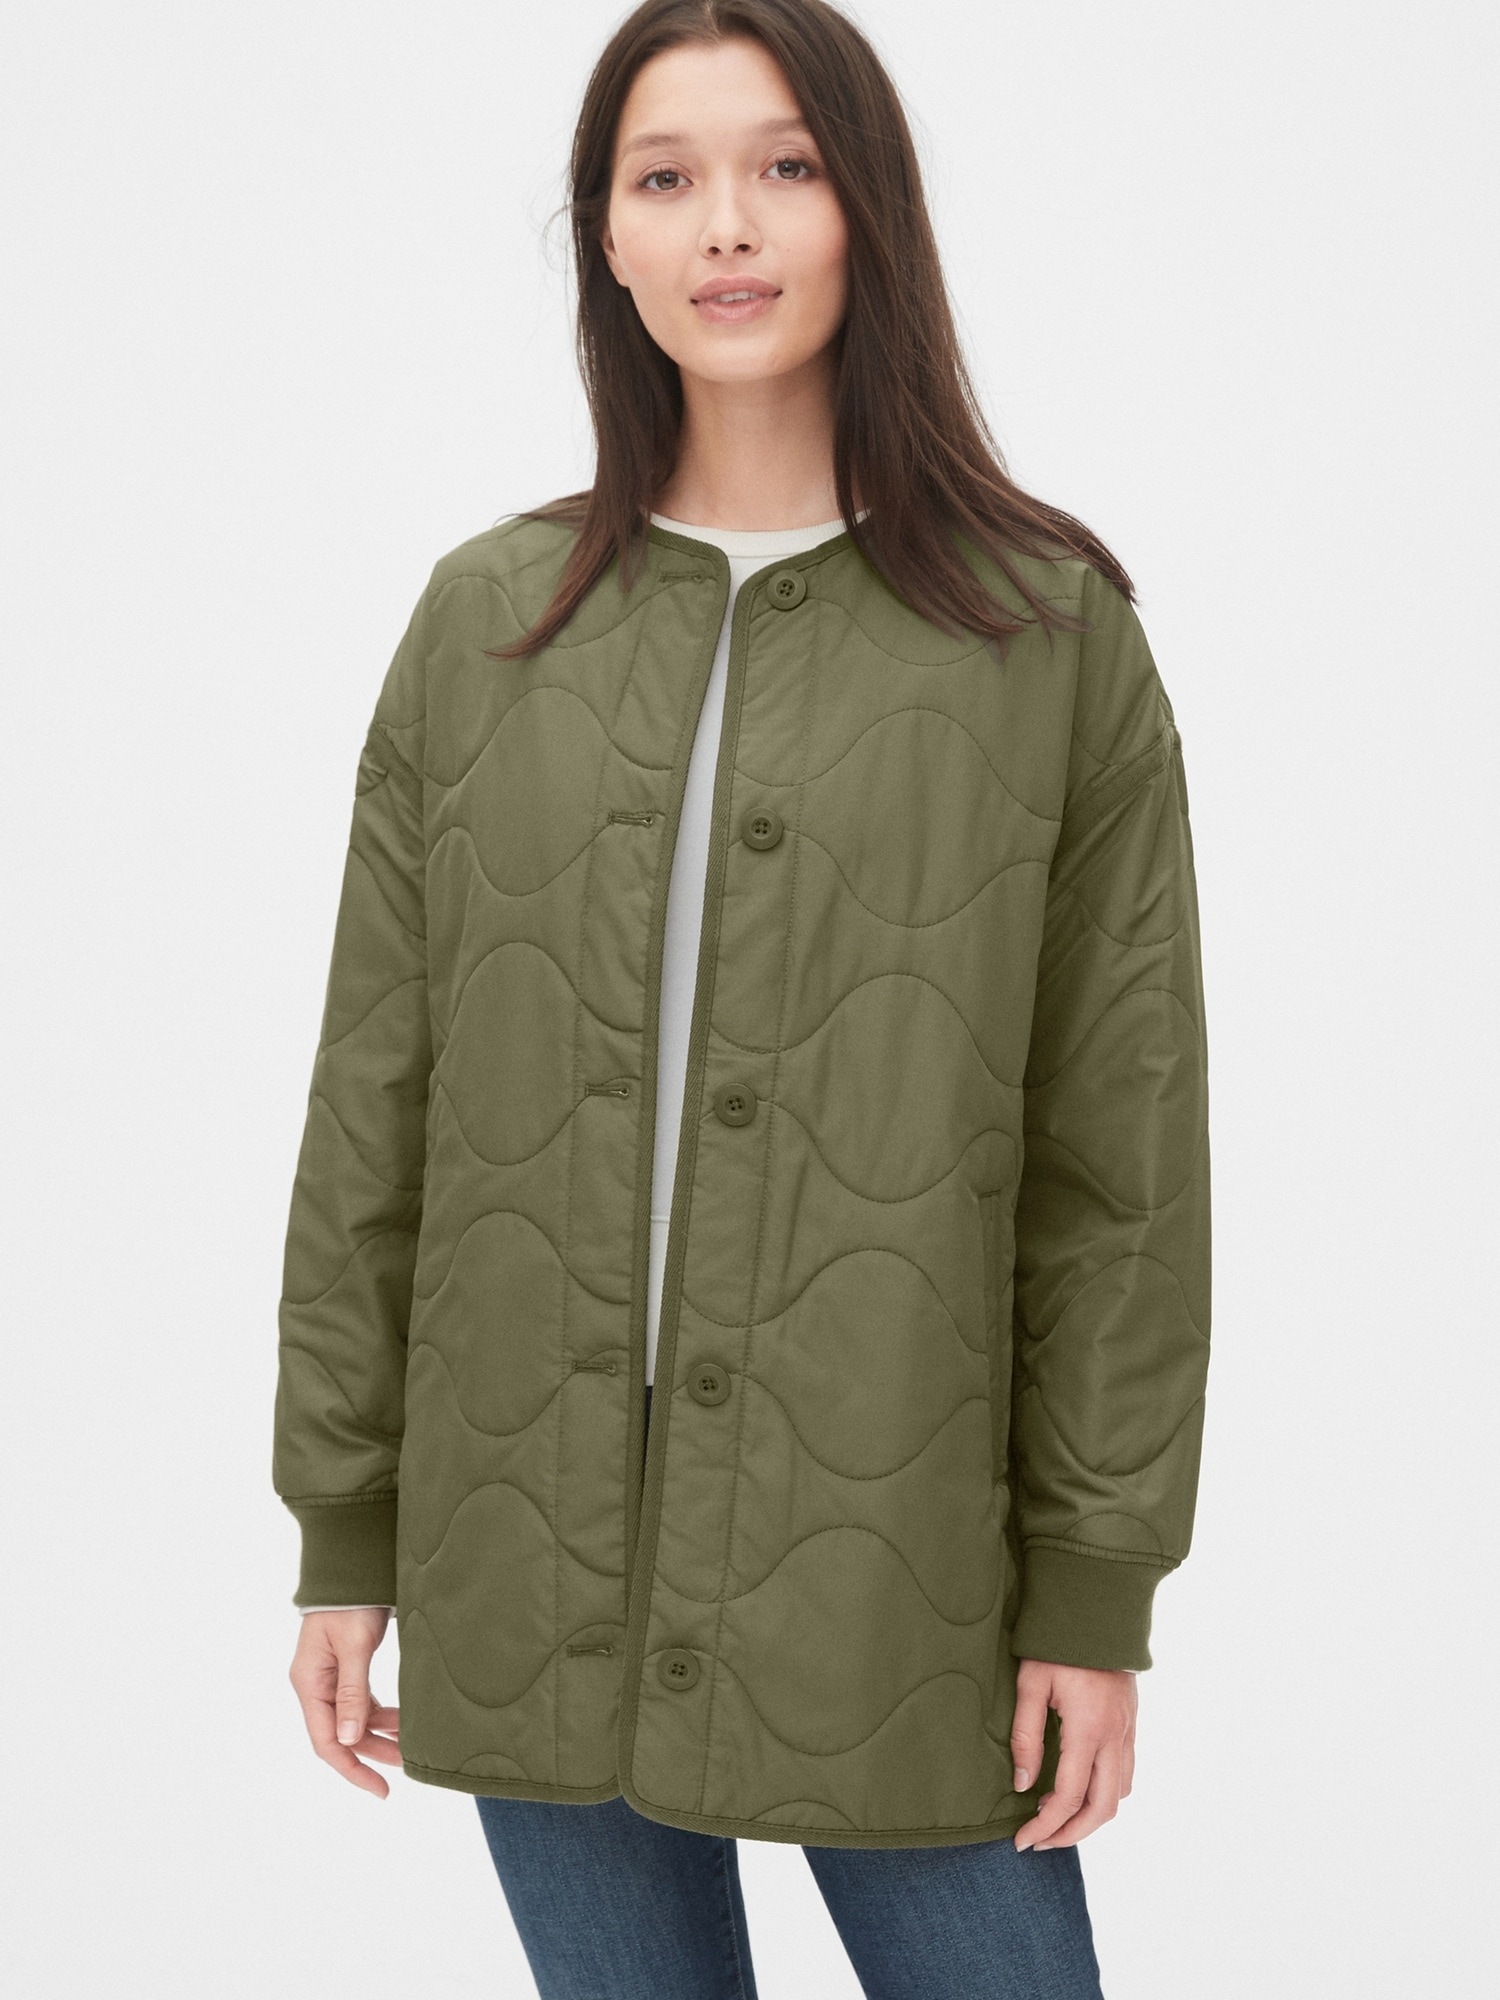 Quilted Liner Jacket by Gap